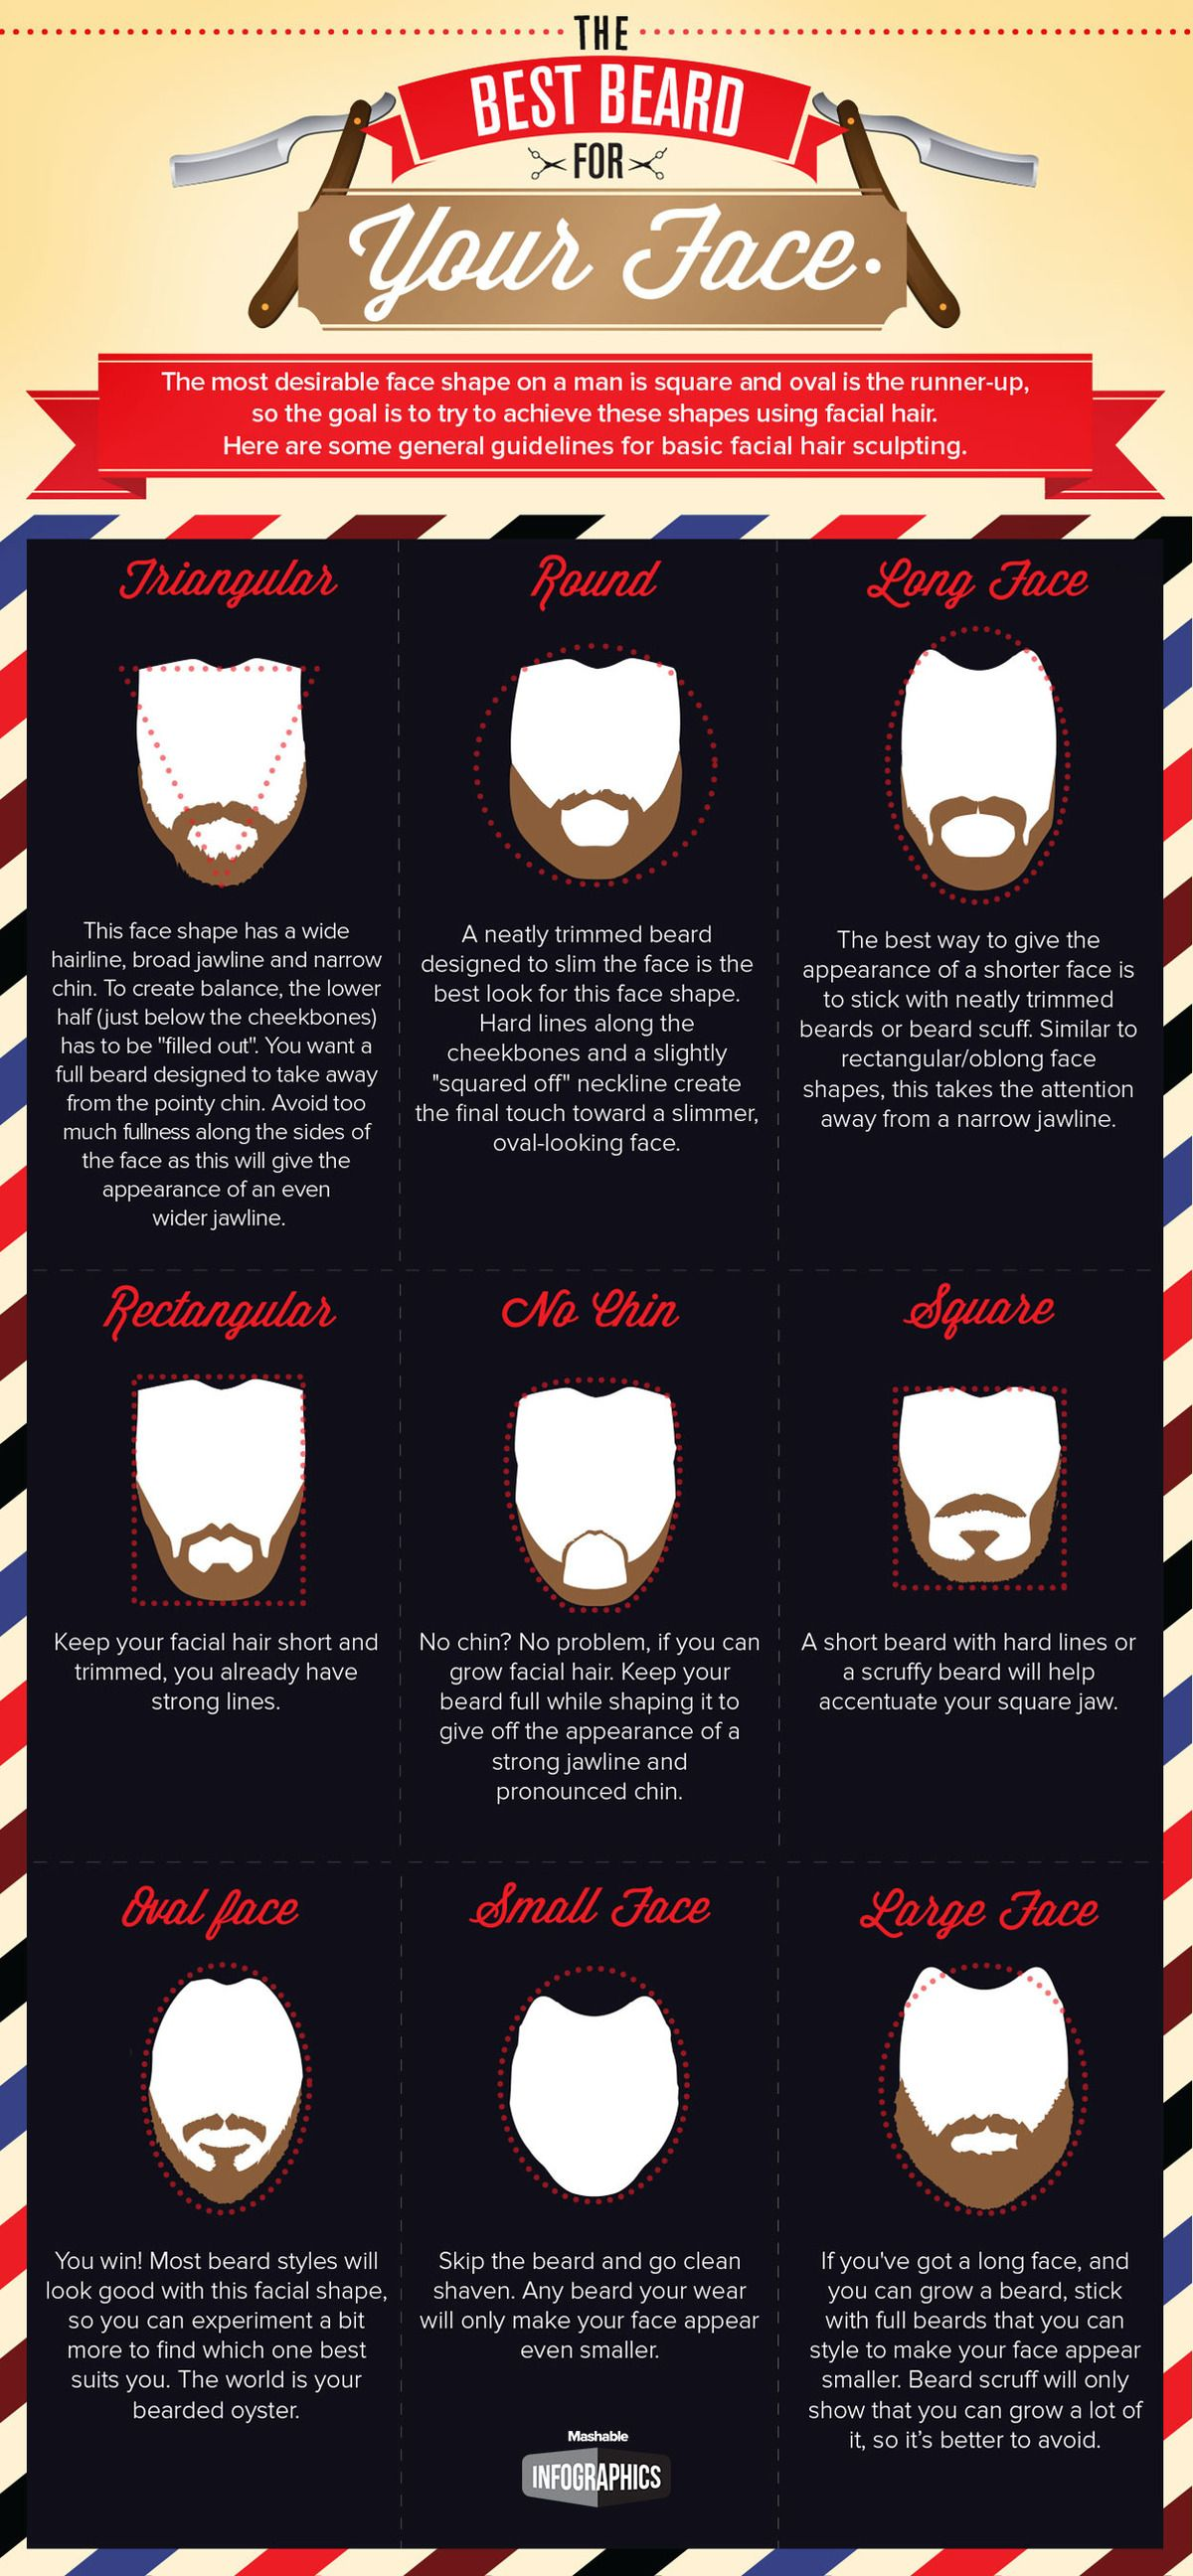 Here is a helpful infographic to help you decide which beard is best for your  face shape. a7526b02ab